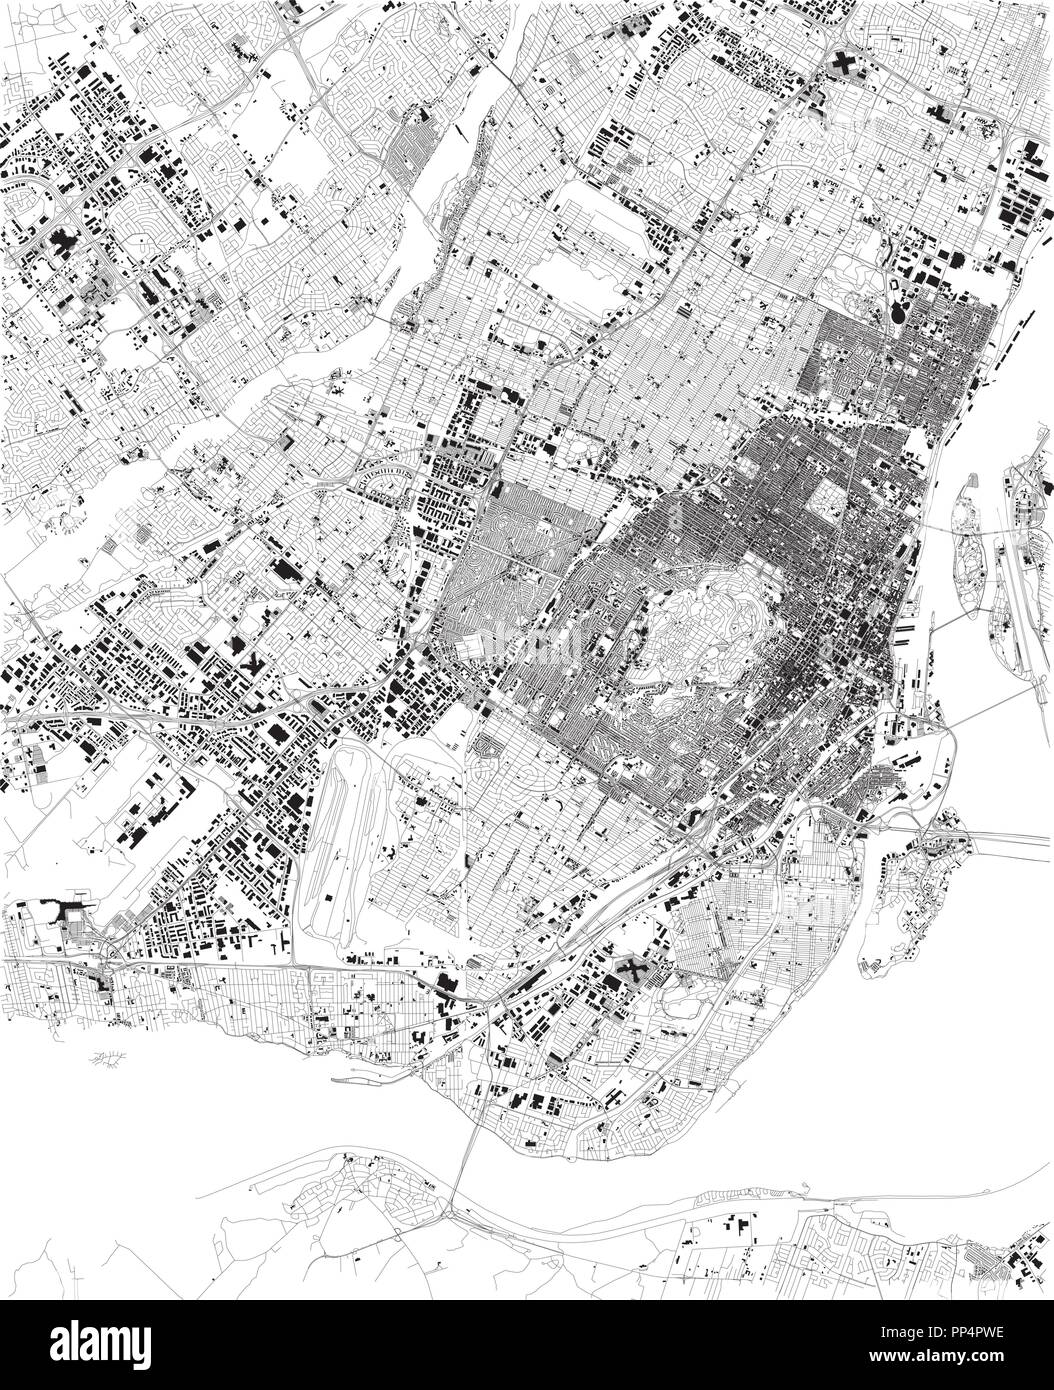 Map of Montreal, satellite view, black and white map. Street ...